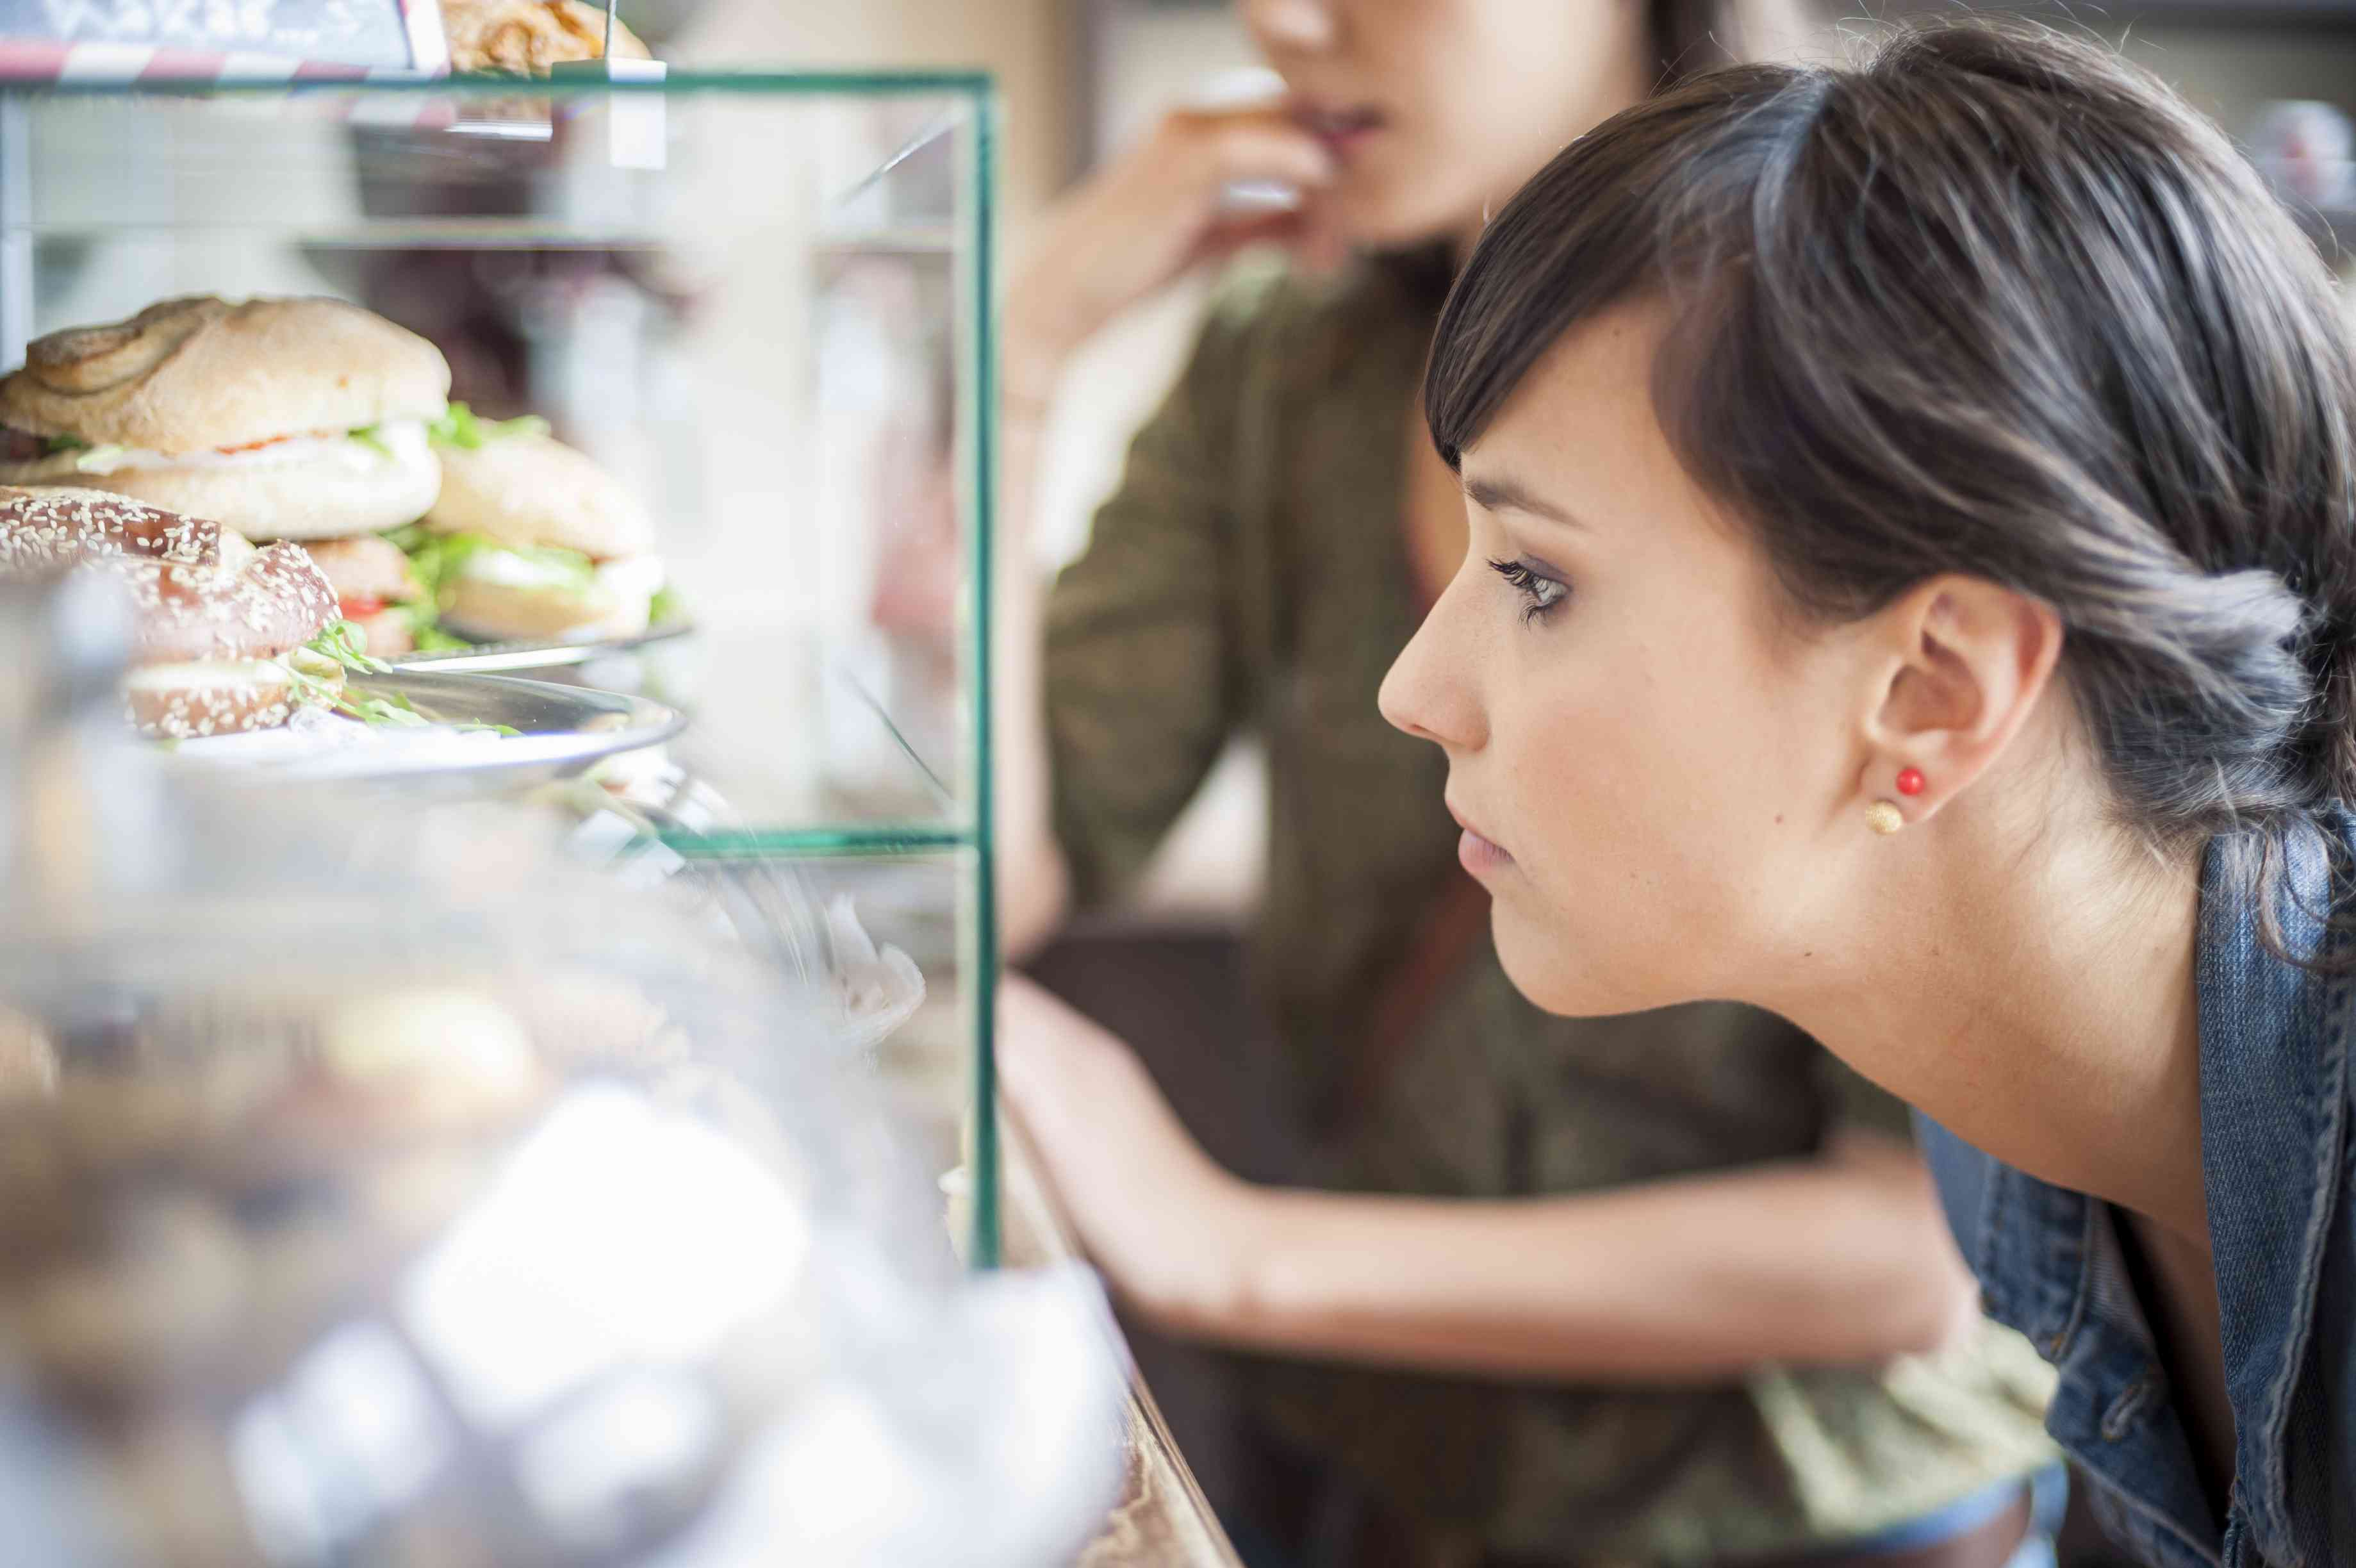 Woman looking at food in deli case